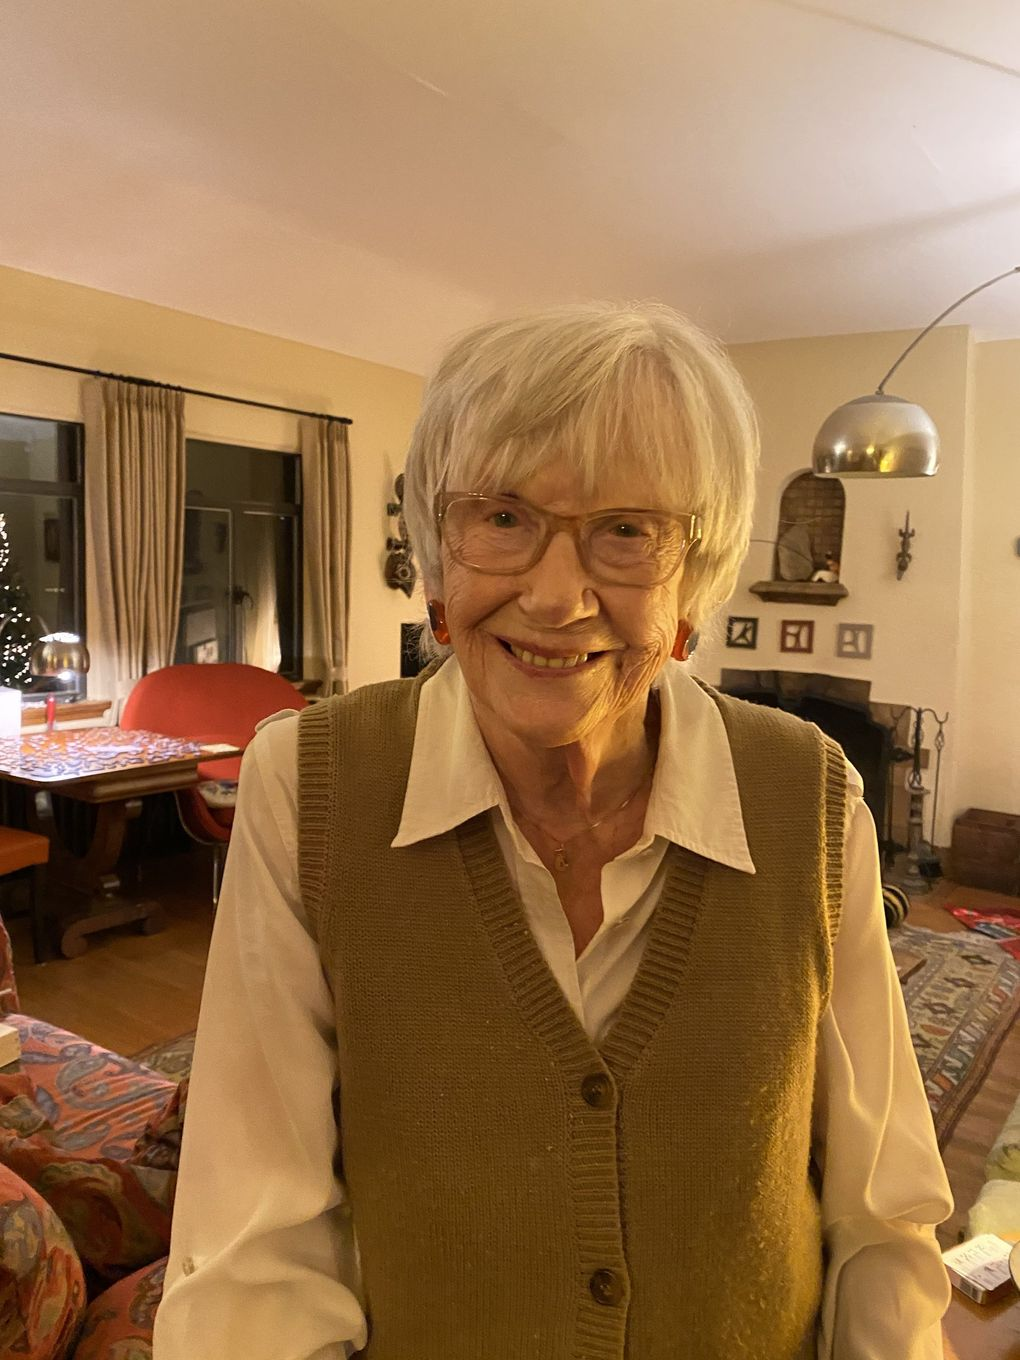 Jean Falls, ACT Theatre co-founder and a driving force behind the charge to save Pike Place Market from a commercial development project, died March 29 at age 94. (Jeannie Falls)